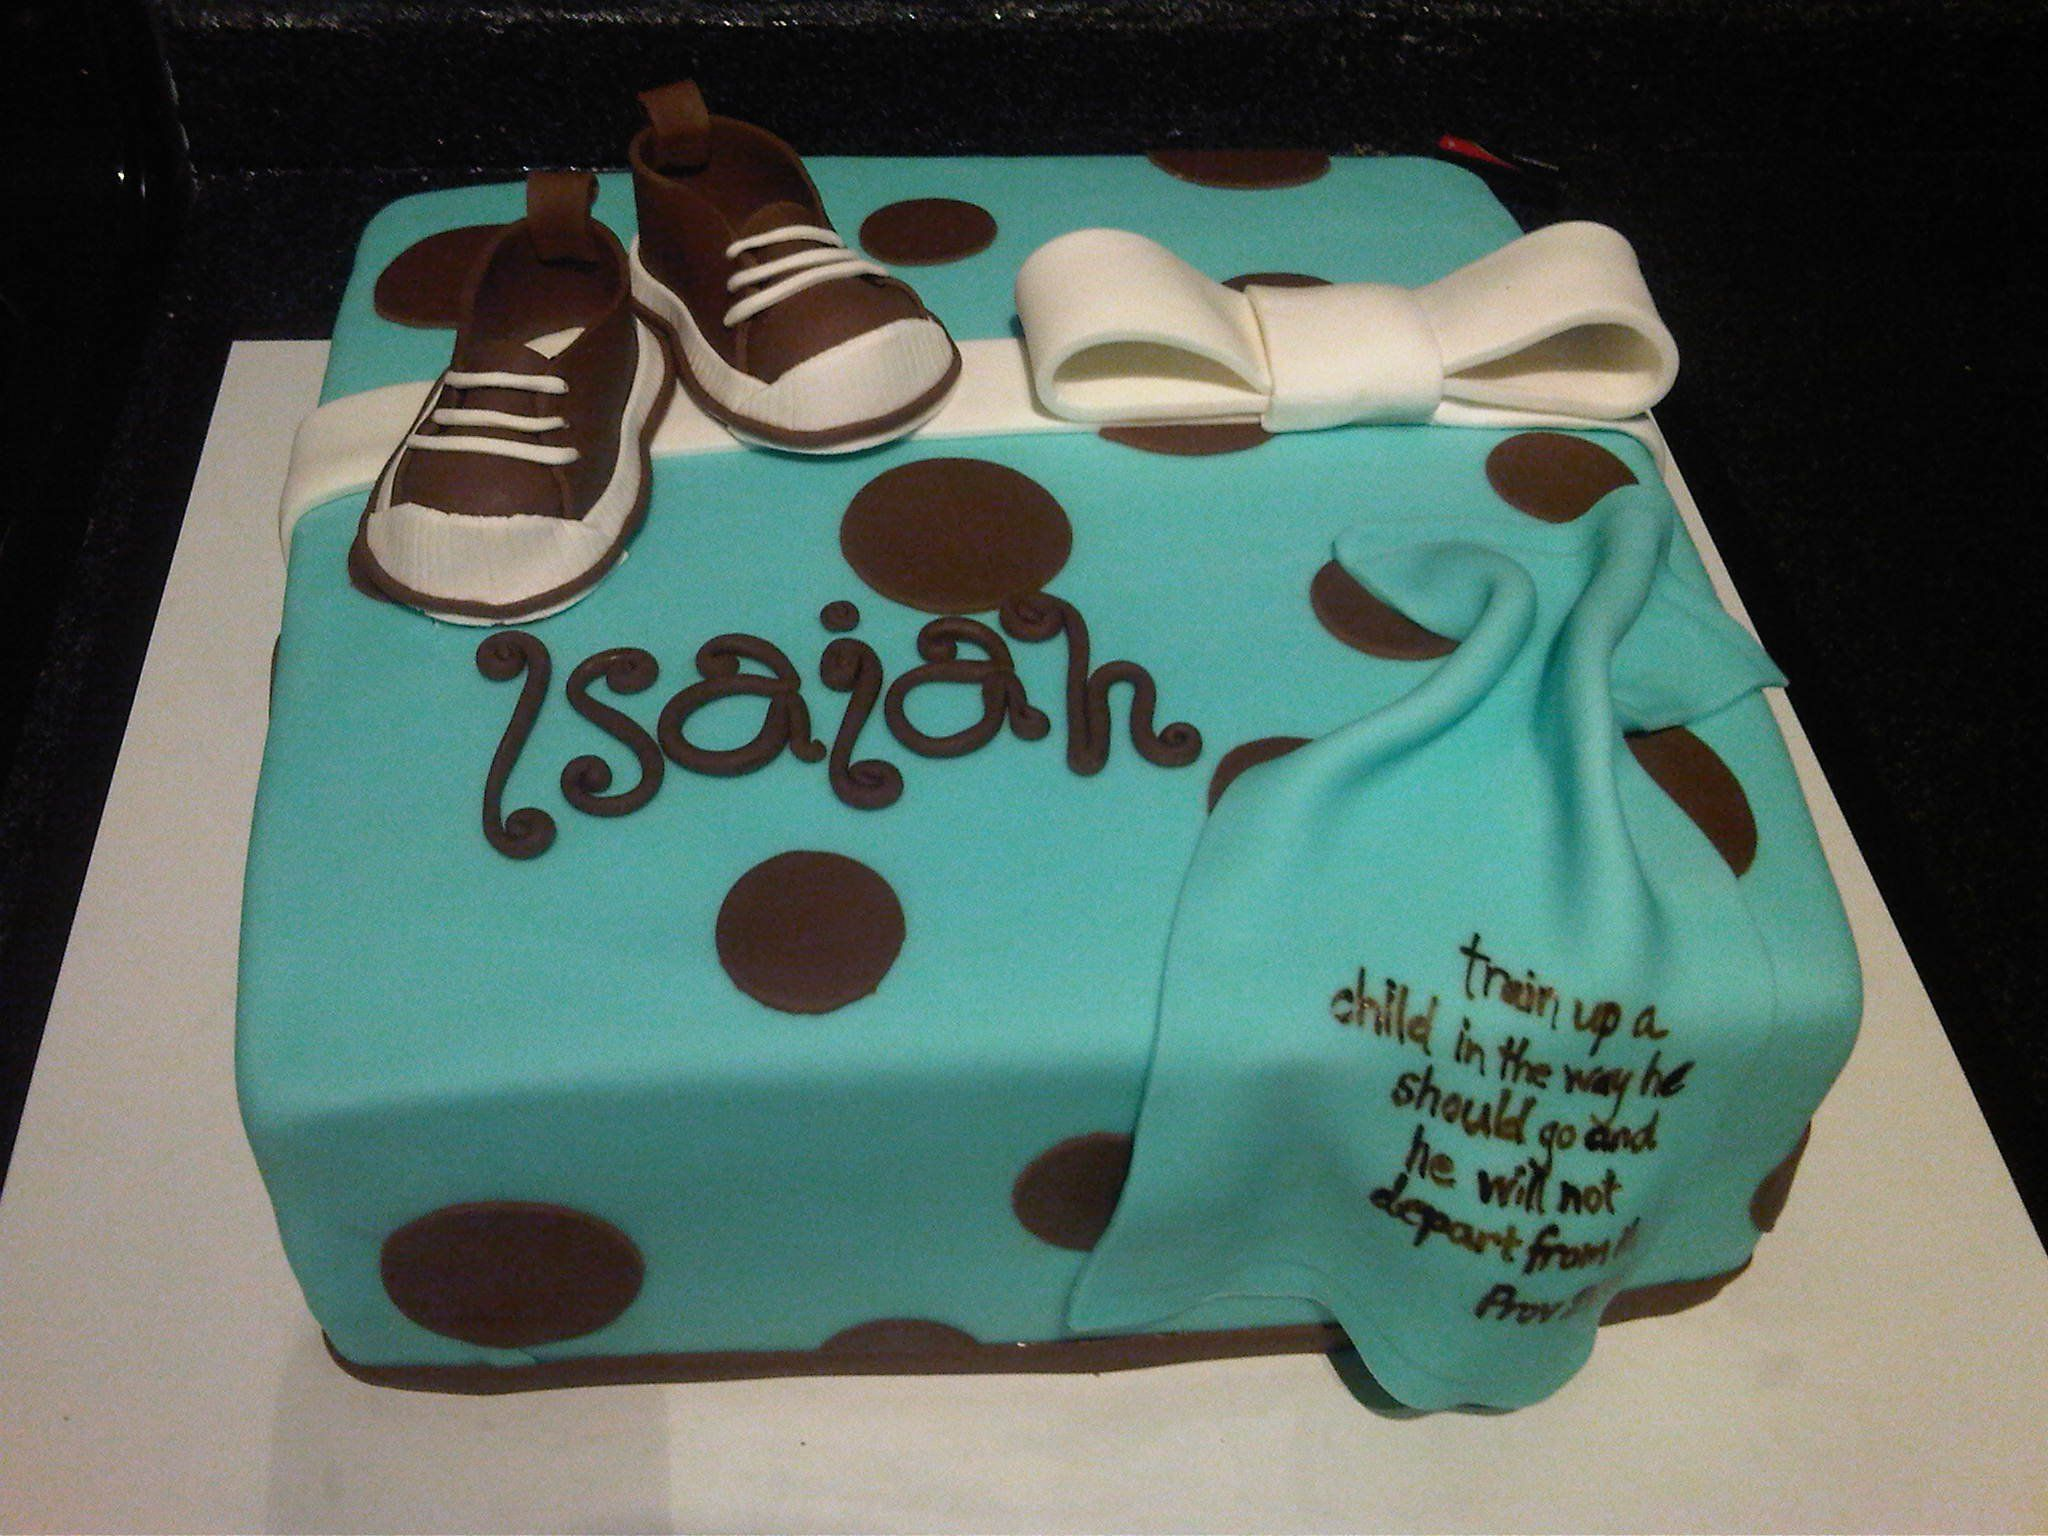 Isaiah S Baby Dedication Cake Made By The Cocoa Cakery It Tasted As Good